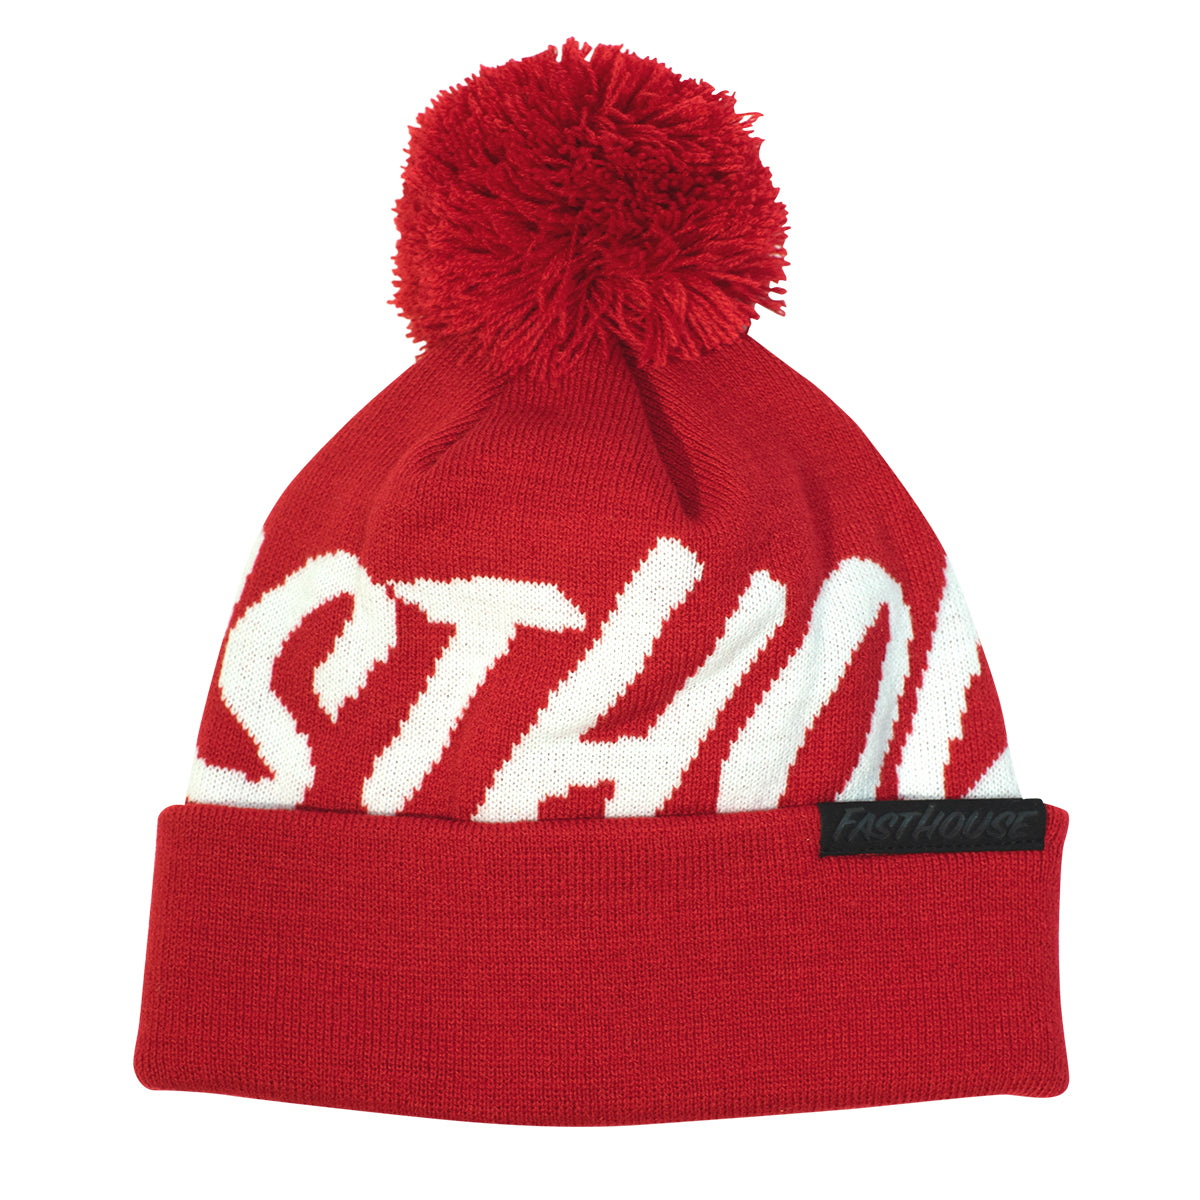 Fasthouse - Fastball Beanie - Red